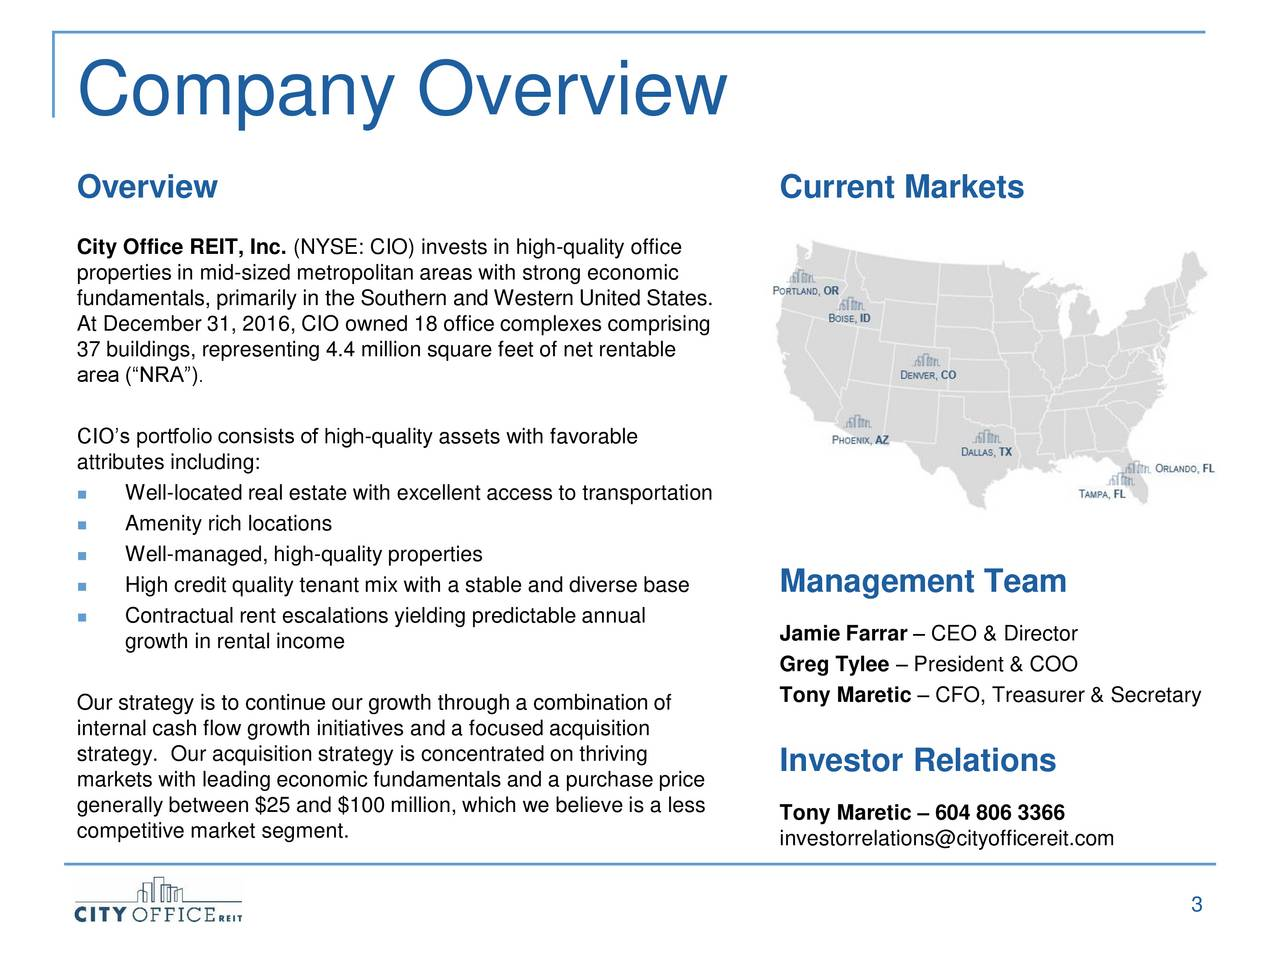 Overview Current Markets City Office REIT, Inc. (NYSE: CIO) invests in high-quality office properties in mid-sized metropolitan areas with strong economic fundamentals, primarily in the Southern and Western United States. At December 31, 2016, CIO owned 18 office complexes comprising 37 buildings, representing 4.4 million square feet of net rentable area (NRA). CIOs portfolio consists of high-quality assets with favorable attributes including: Well-located real estate with excellent access to transportation Amenity rich locations Well-managed, high-quality properties High credit quality tenant mix with a stable and diverse basManagement Team Contractual rent escalations yielding predictable annual growth in rental income Jamie Farrar  CEO & Director Greg Tylee  President & COO Our strategy is to continue our growth through a combination of Tony Maretic  CFO, Treasurer & Secretary internal cash flow growth initiatives and a focused acquisition strategy. Our acquisition strategy is concentrated on thriving markets with leading economic fundamentals and a purchase price Investor Relations generally between $25 and $100 million, which we believe is a leTony Maretic  604 806 3366 competitive market segment. investorrelations@cityofficereit.com 3